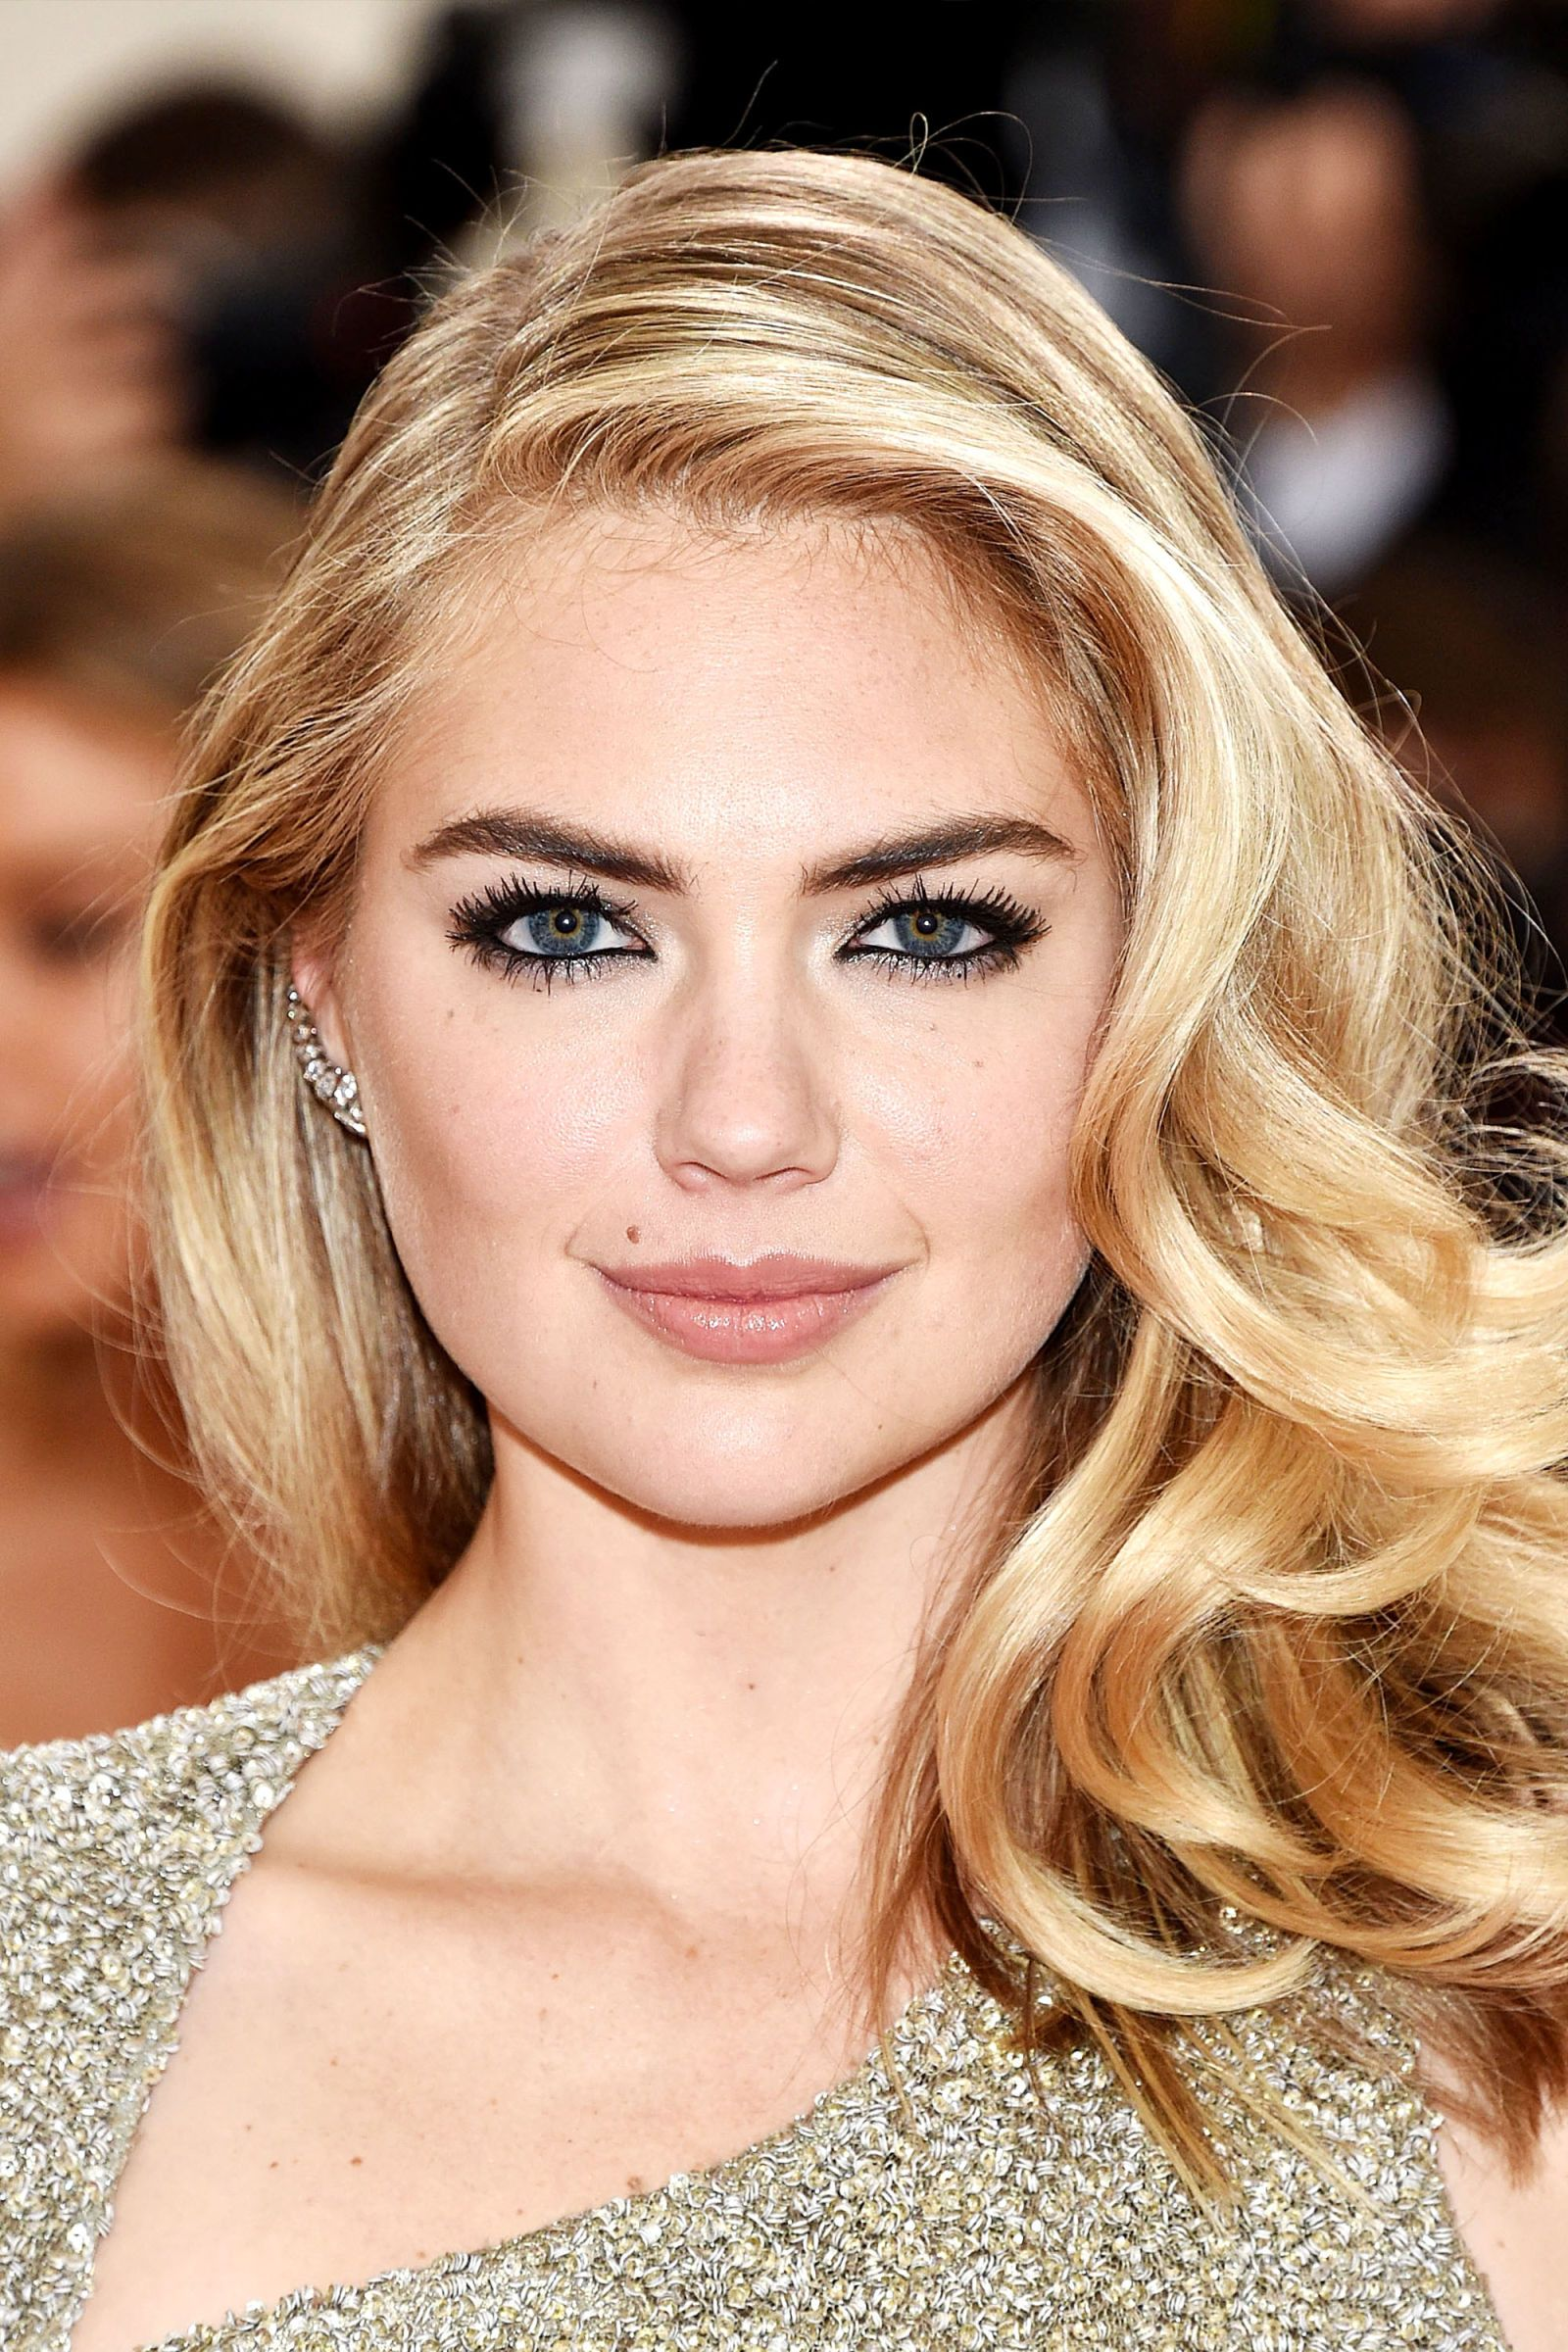 Hairstyles That Complement a Round Face